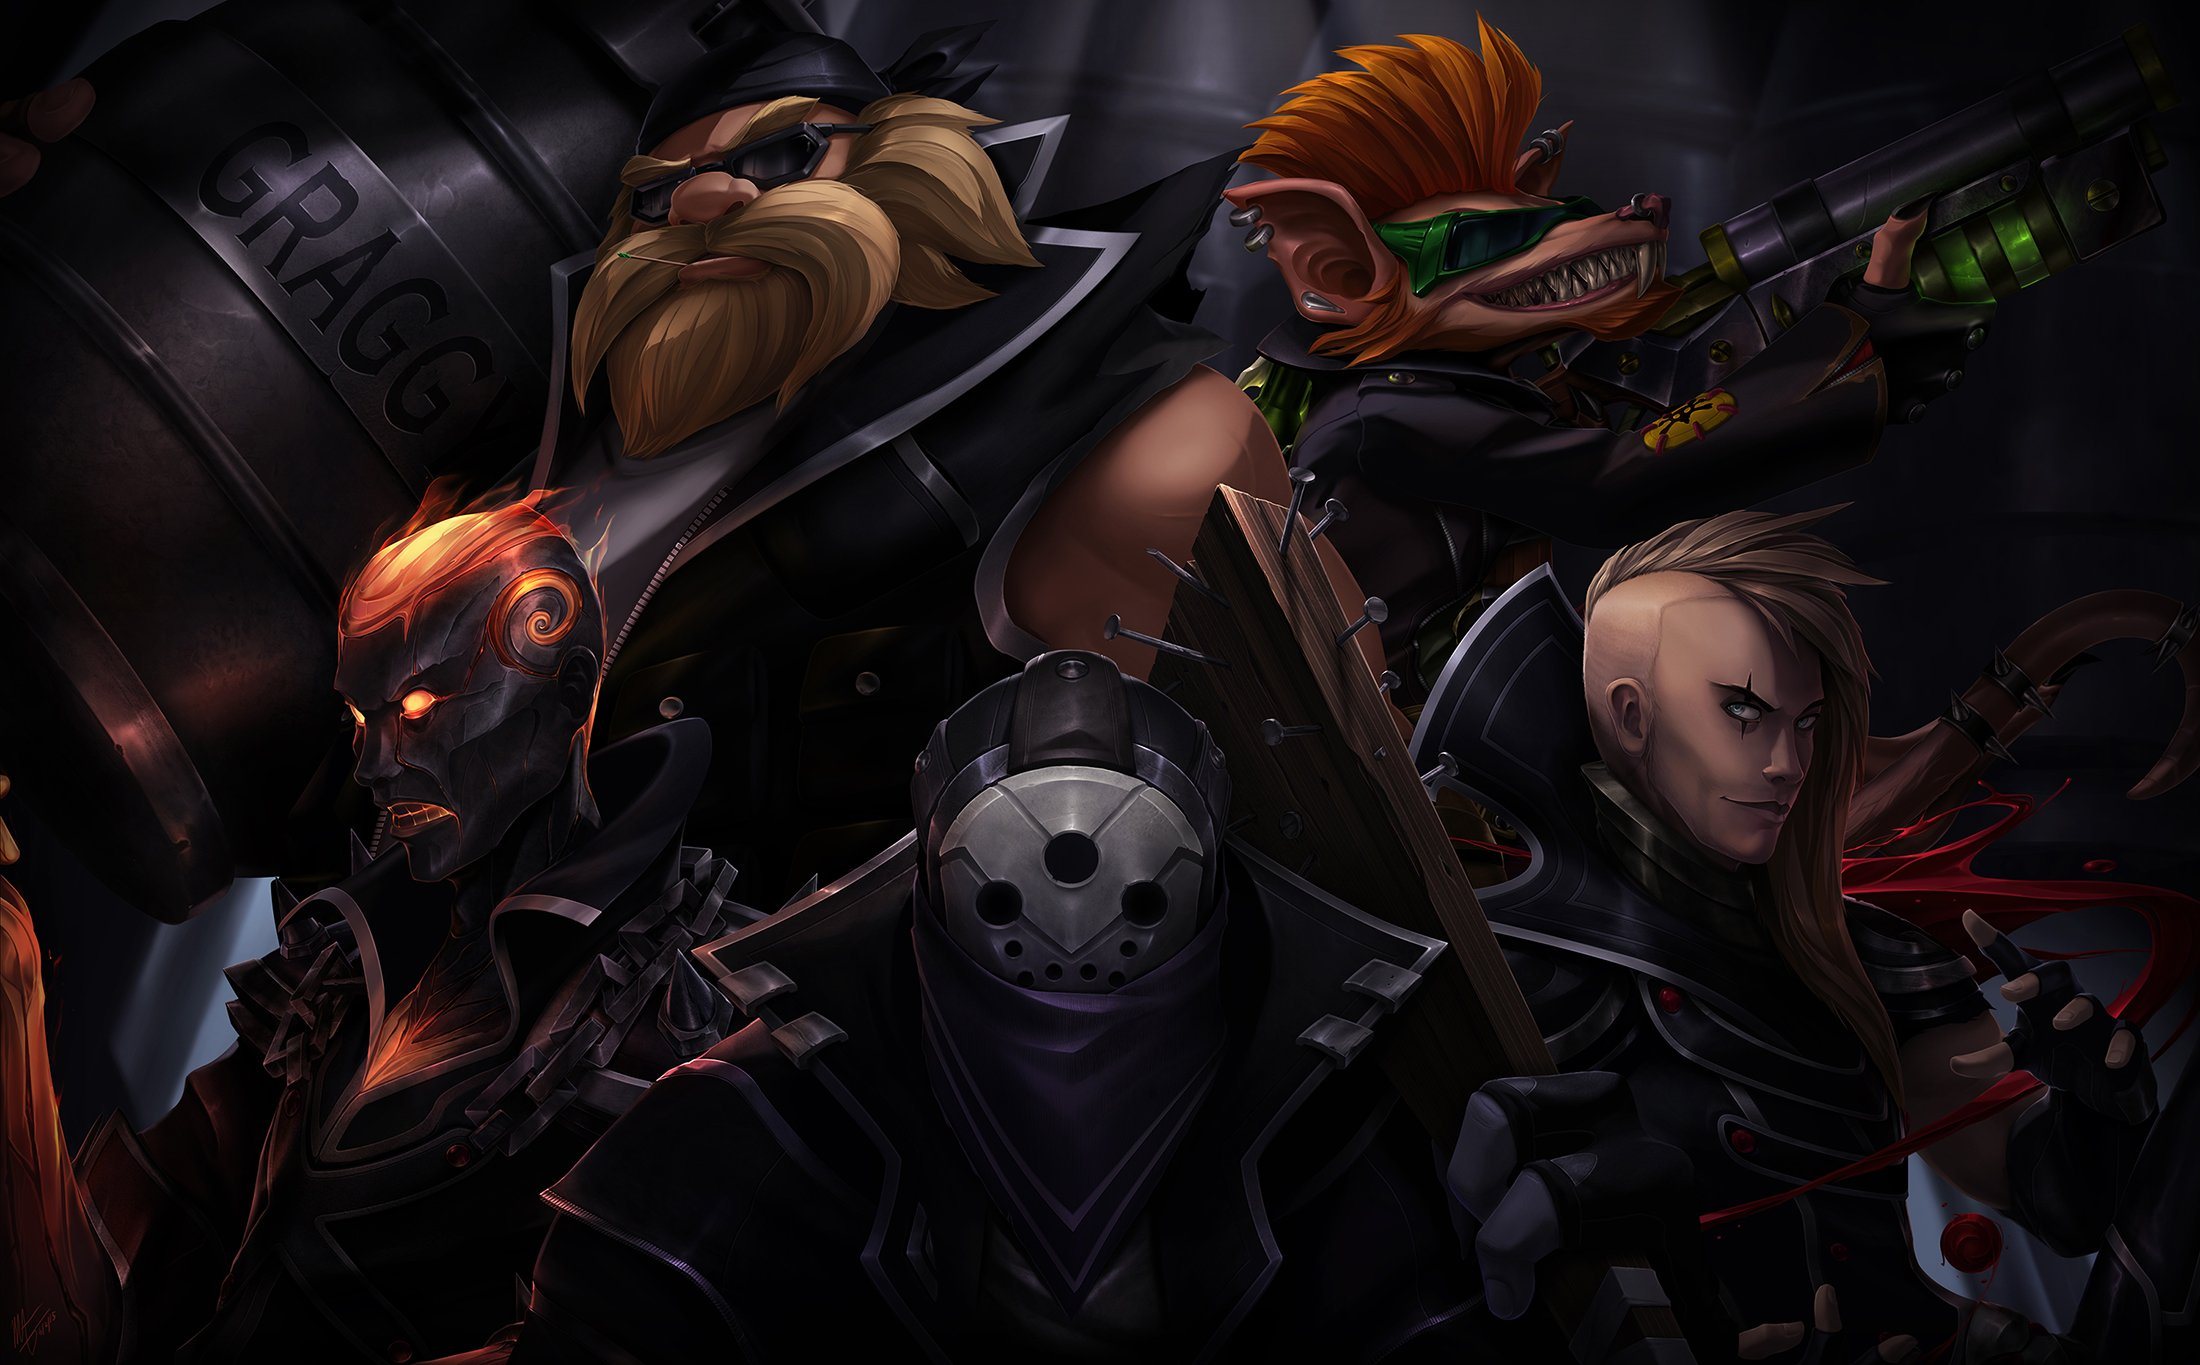 52 Jax League Of Legends Hd Wallpapers Background Images